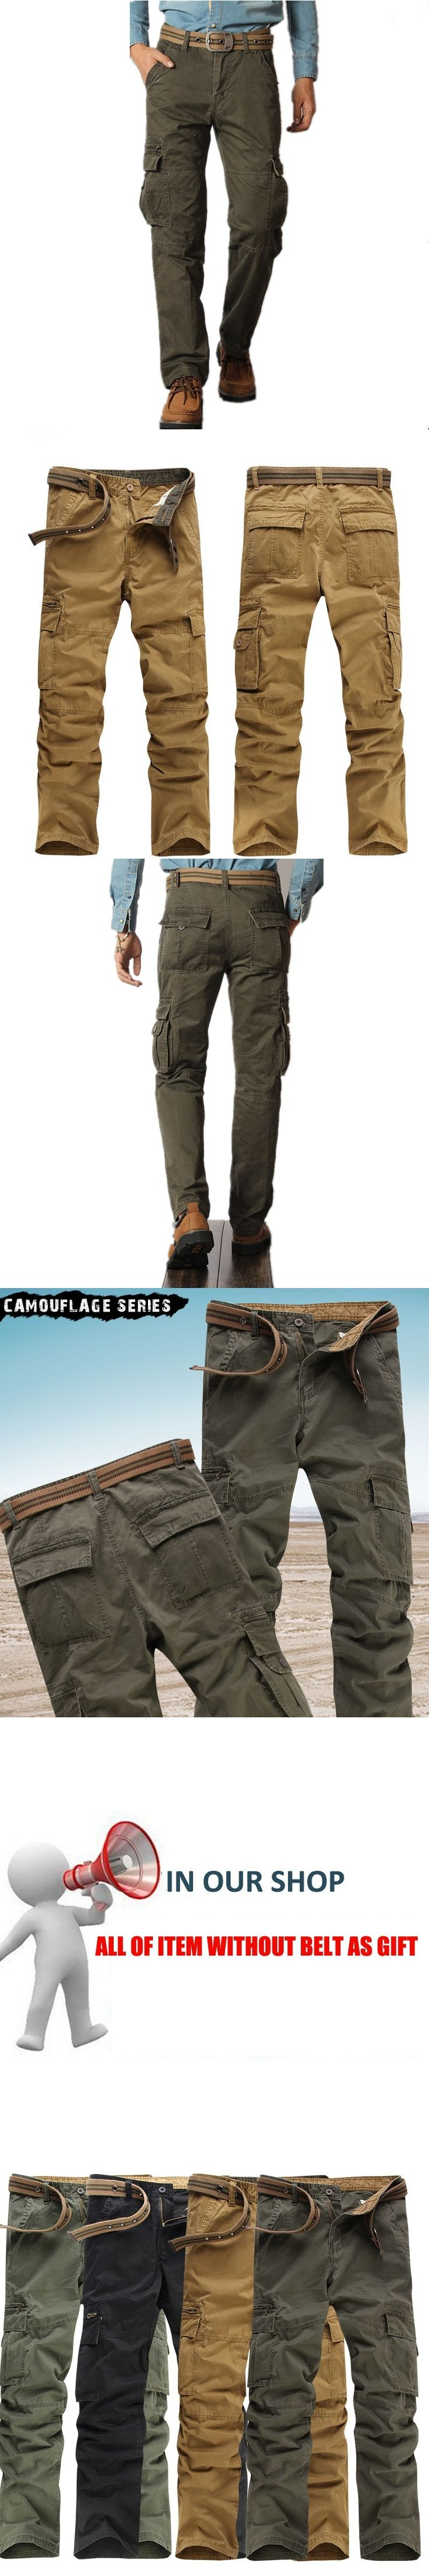 2017 Men Cargo Pants Army Pant Mens Army Outdoors Tactical Military Pants Cotton Long trousers for man grey green no belts 38